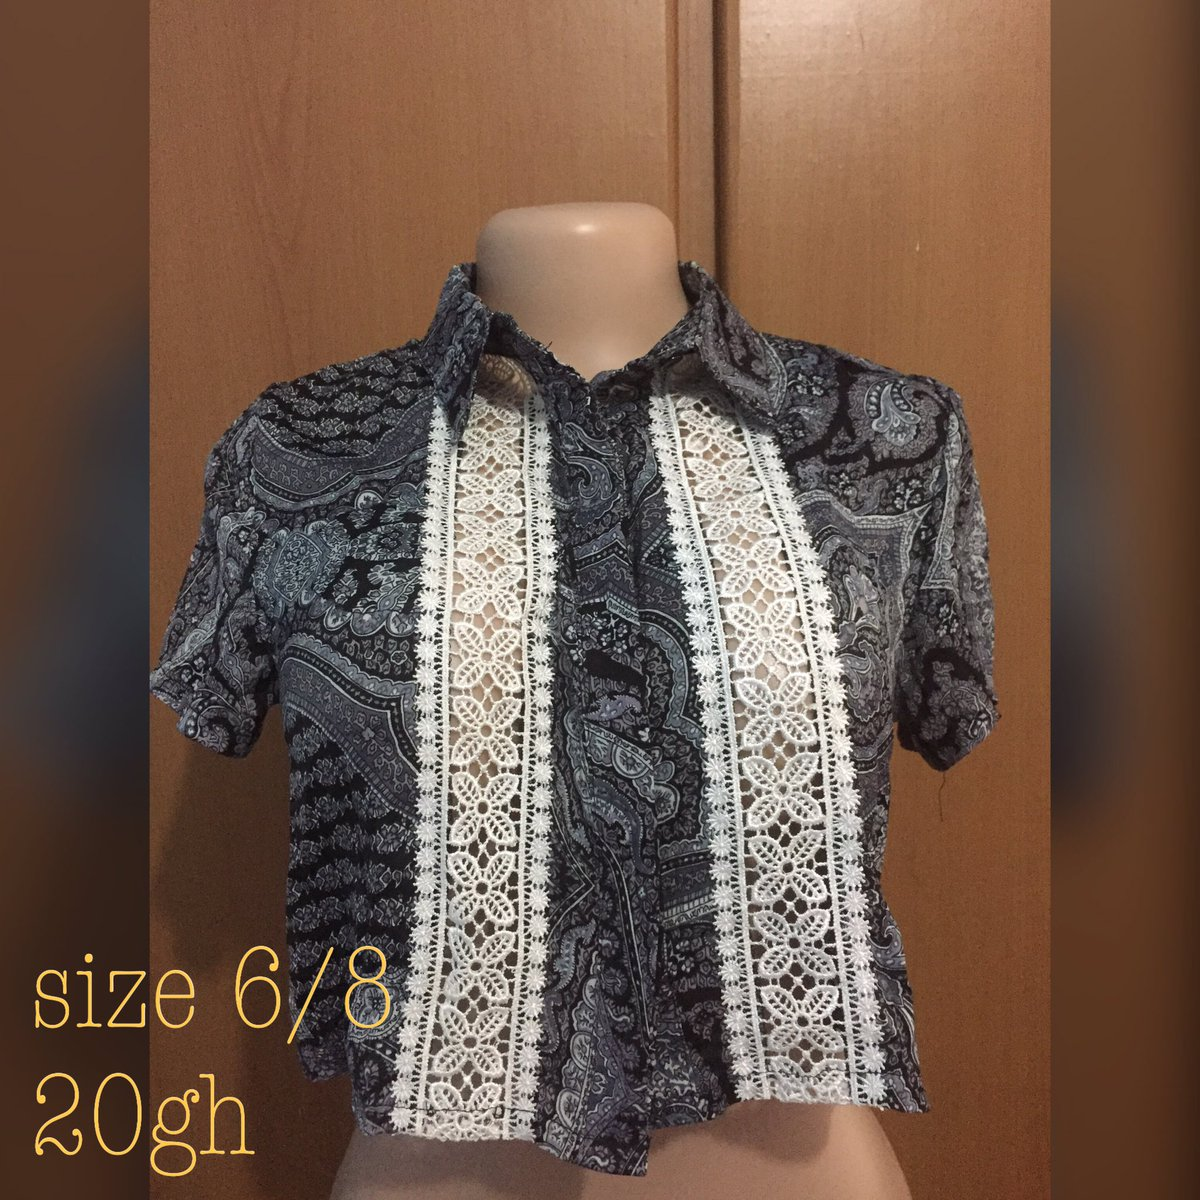 Cop this beauty for your wcw for a cool 20gh .  #slayonbudget pic.twitter.com/ZwmgGGpNu3